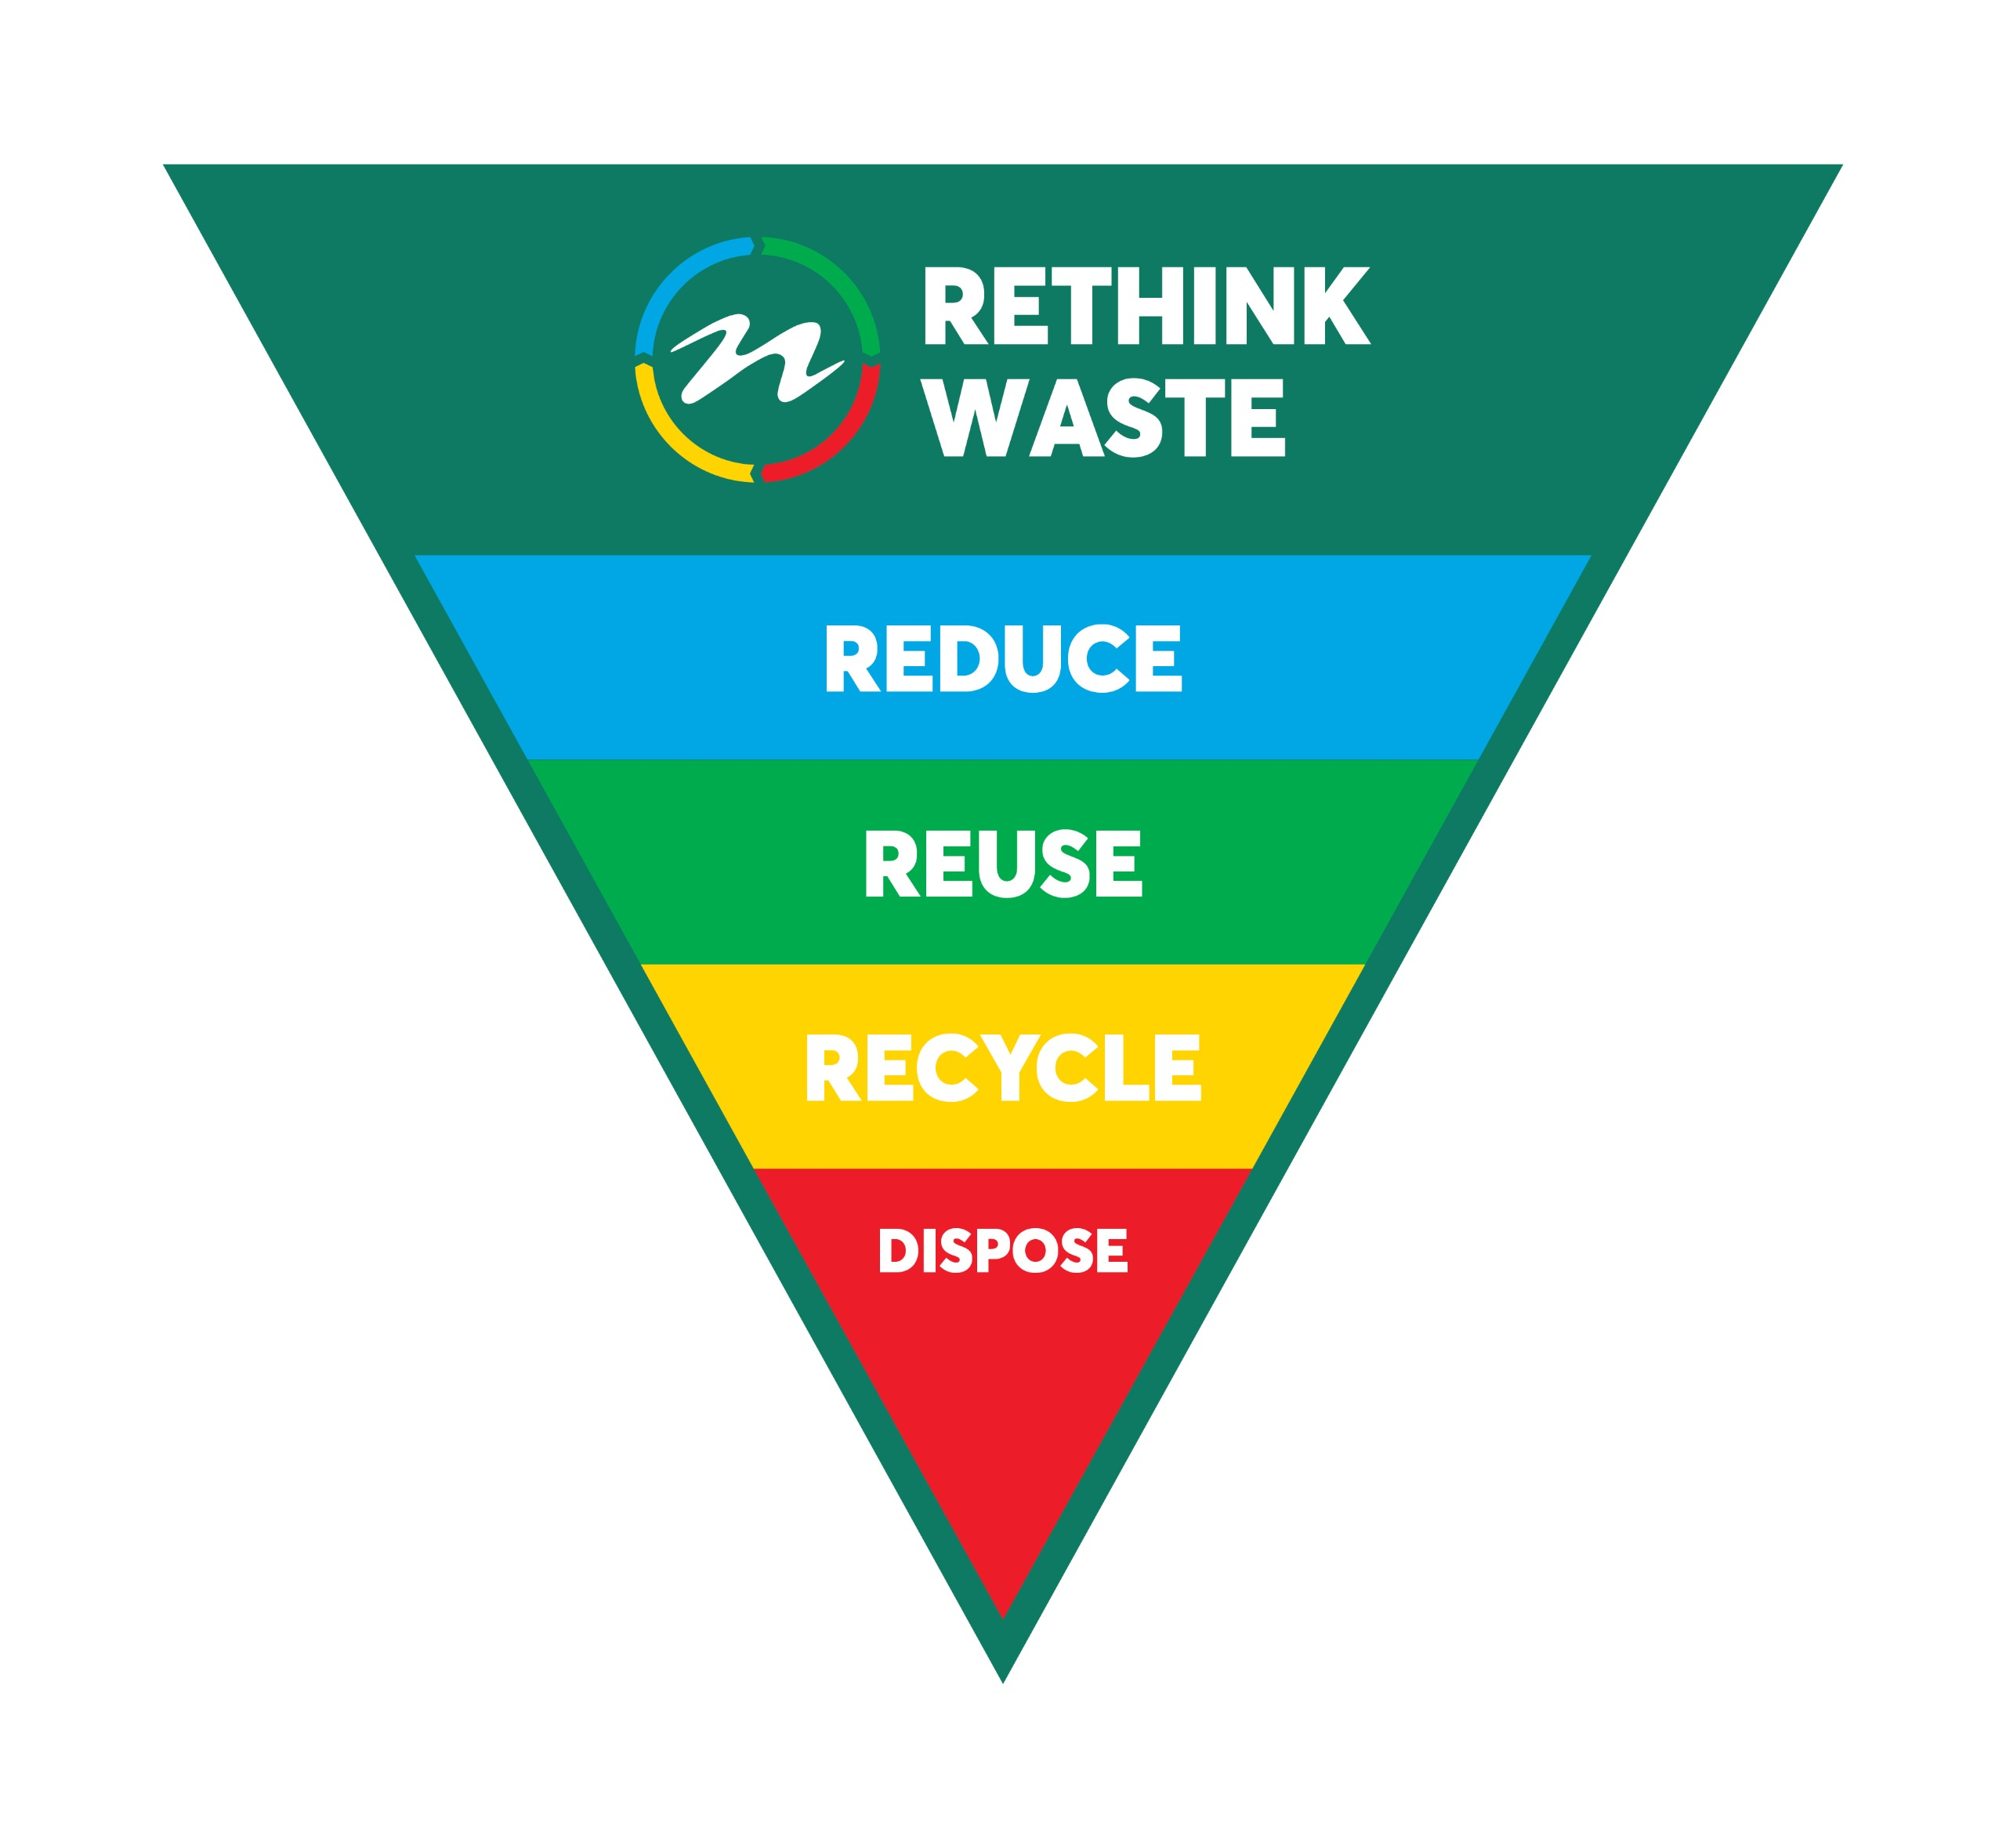 Waste Triangle - Reduce, reuse, recycle